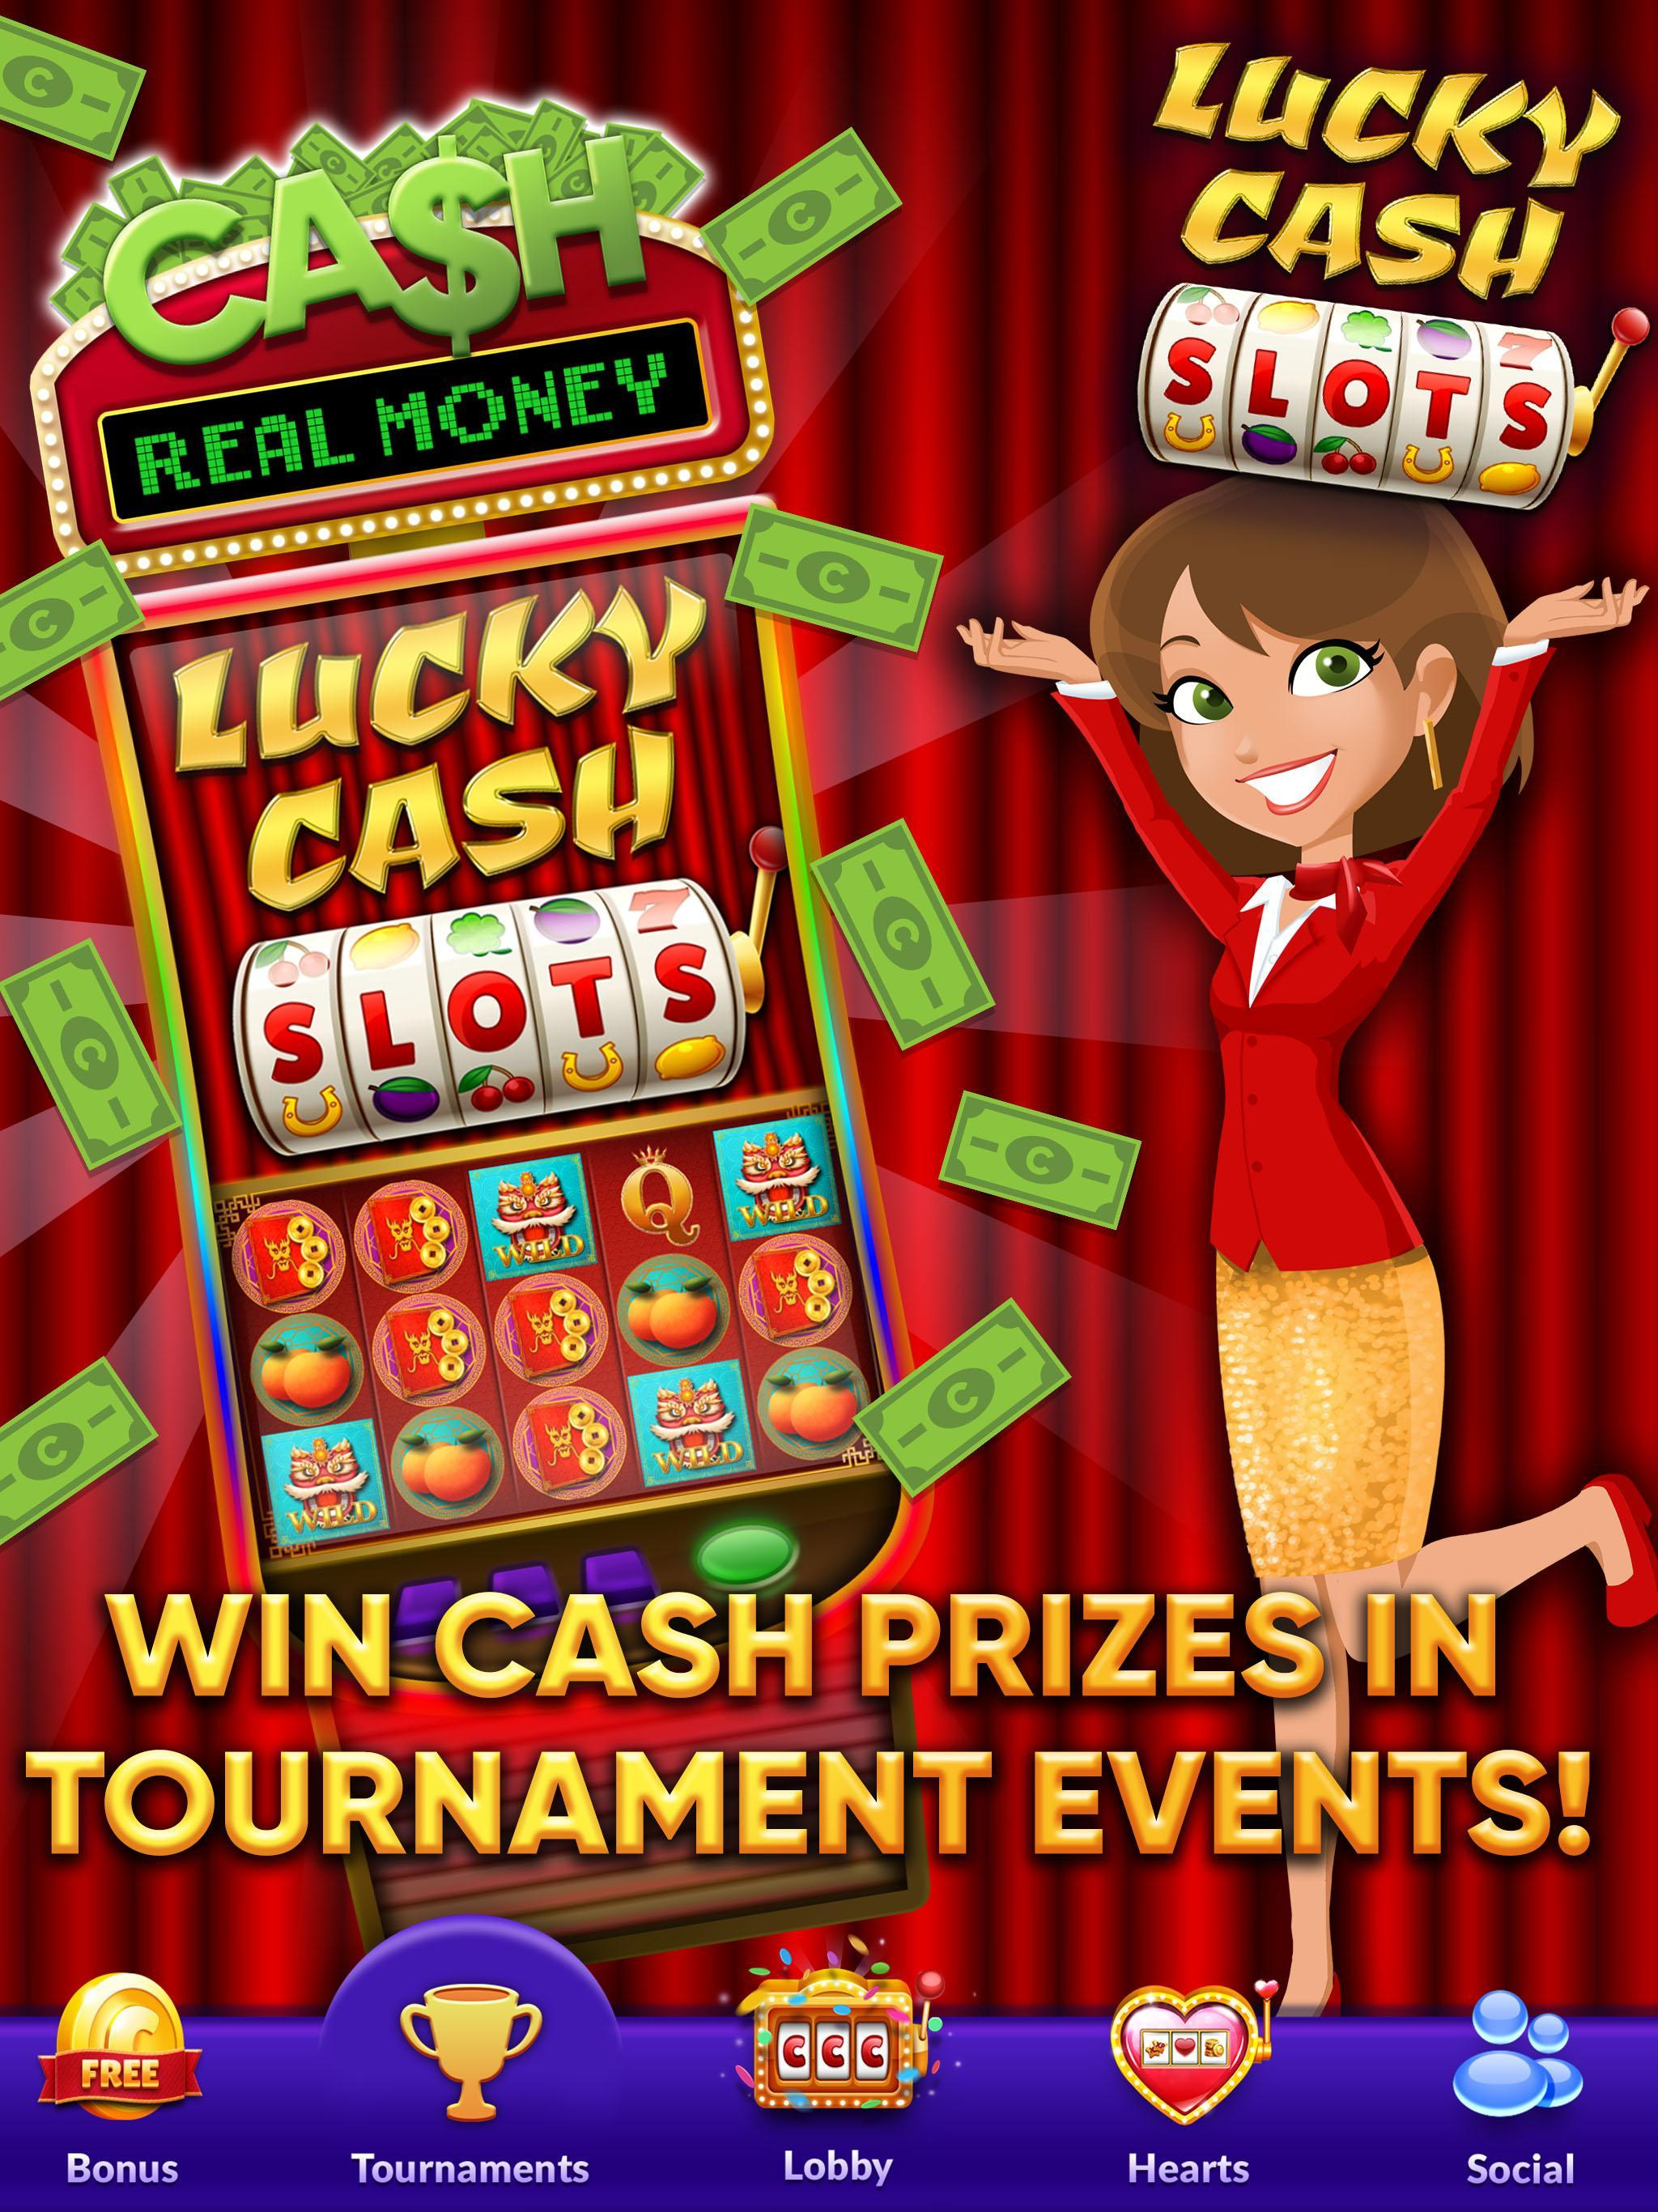 Best Slot App To Win Real Money